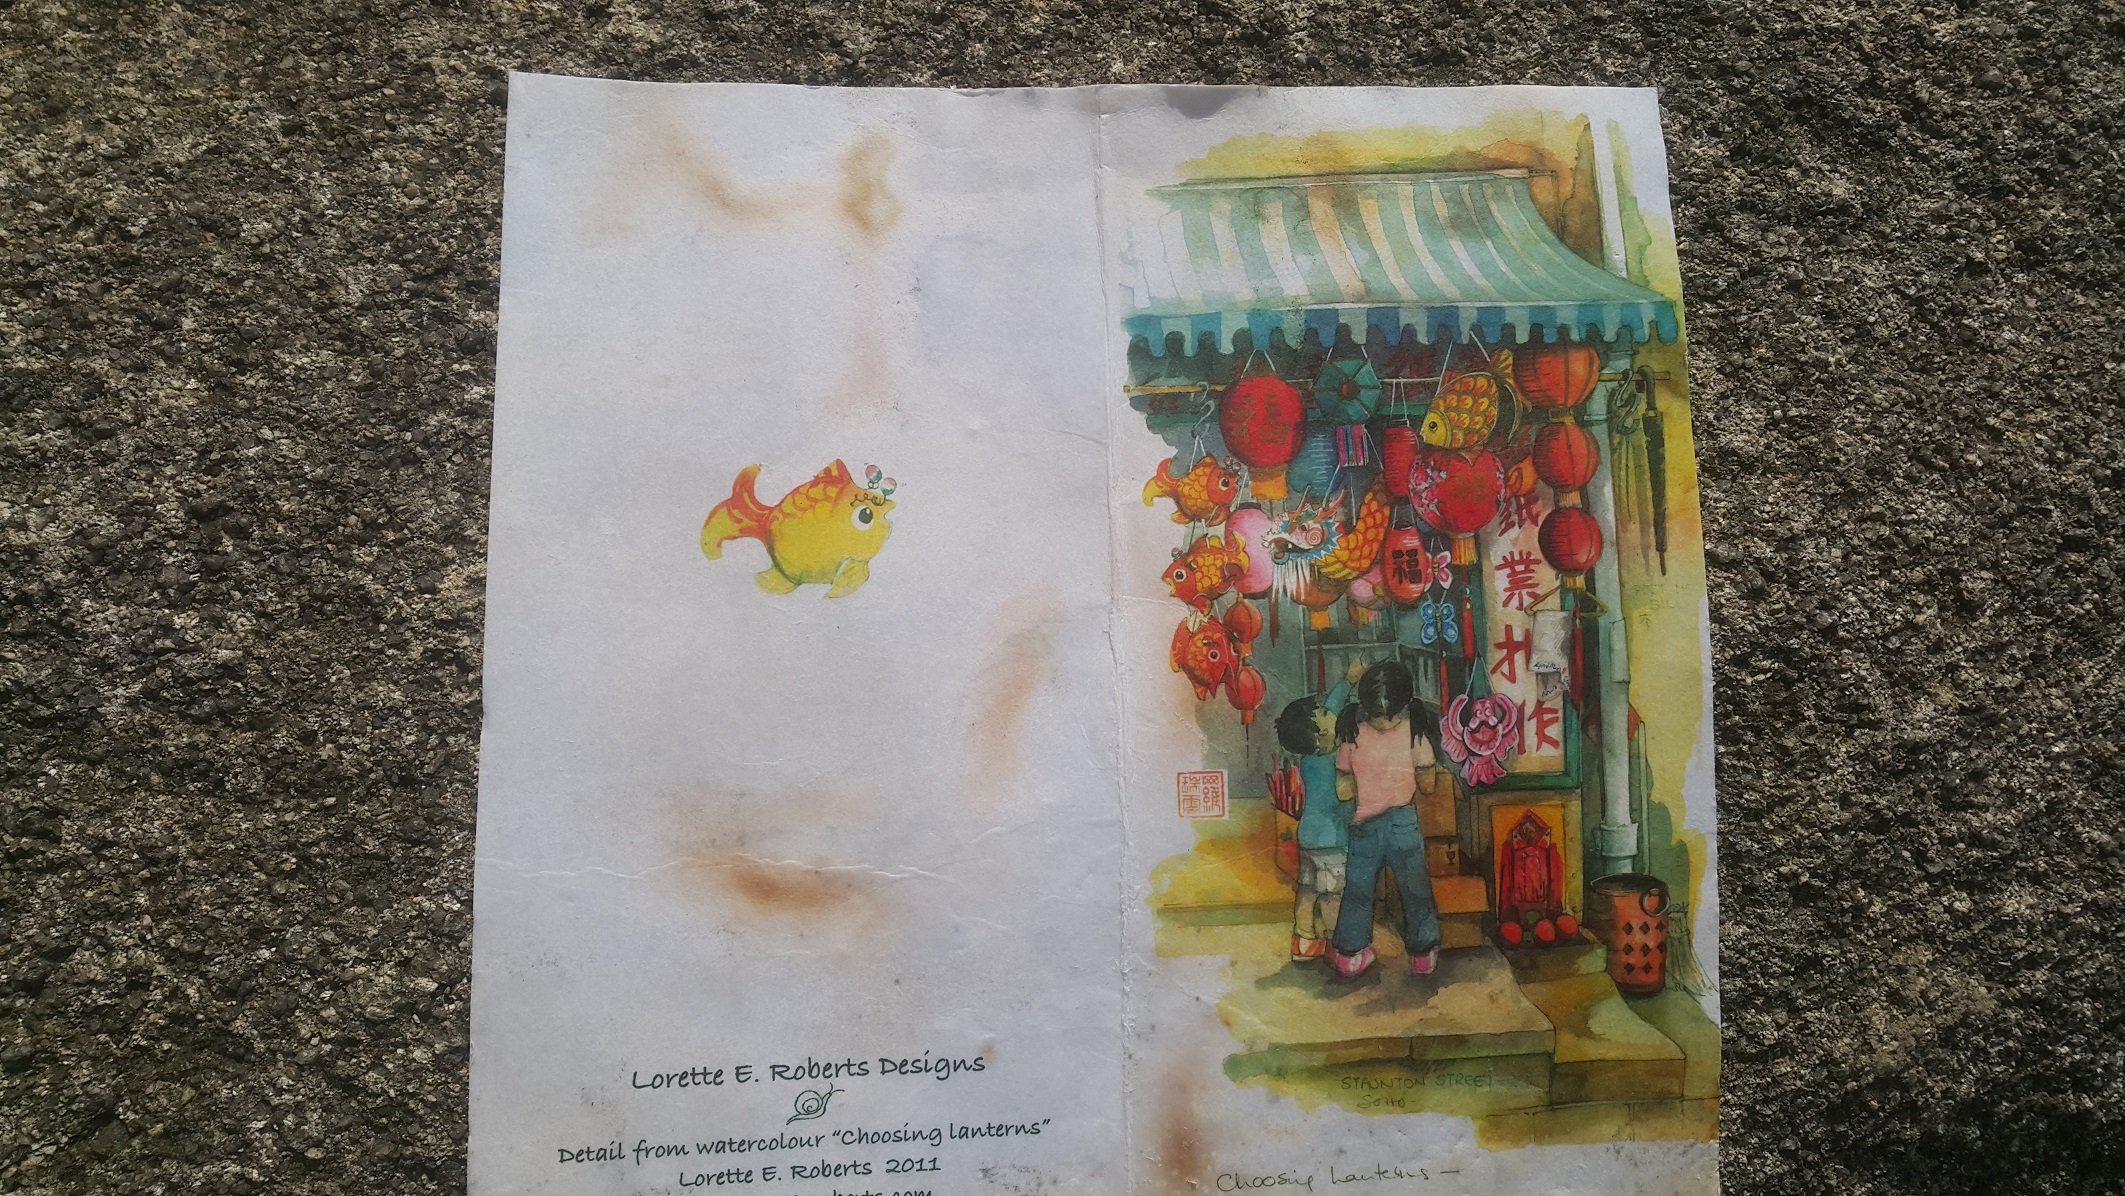 The cover of the letter I left on Mount Stenhouse, found and photographed by Alex Leung